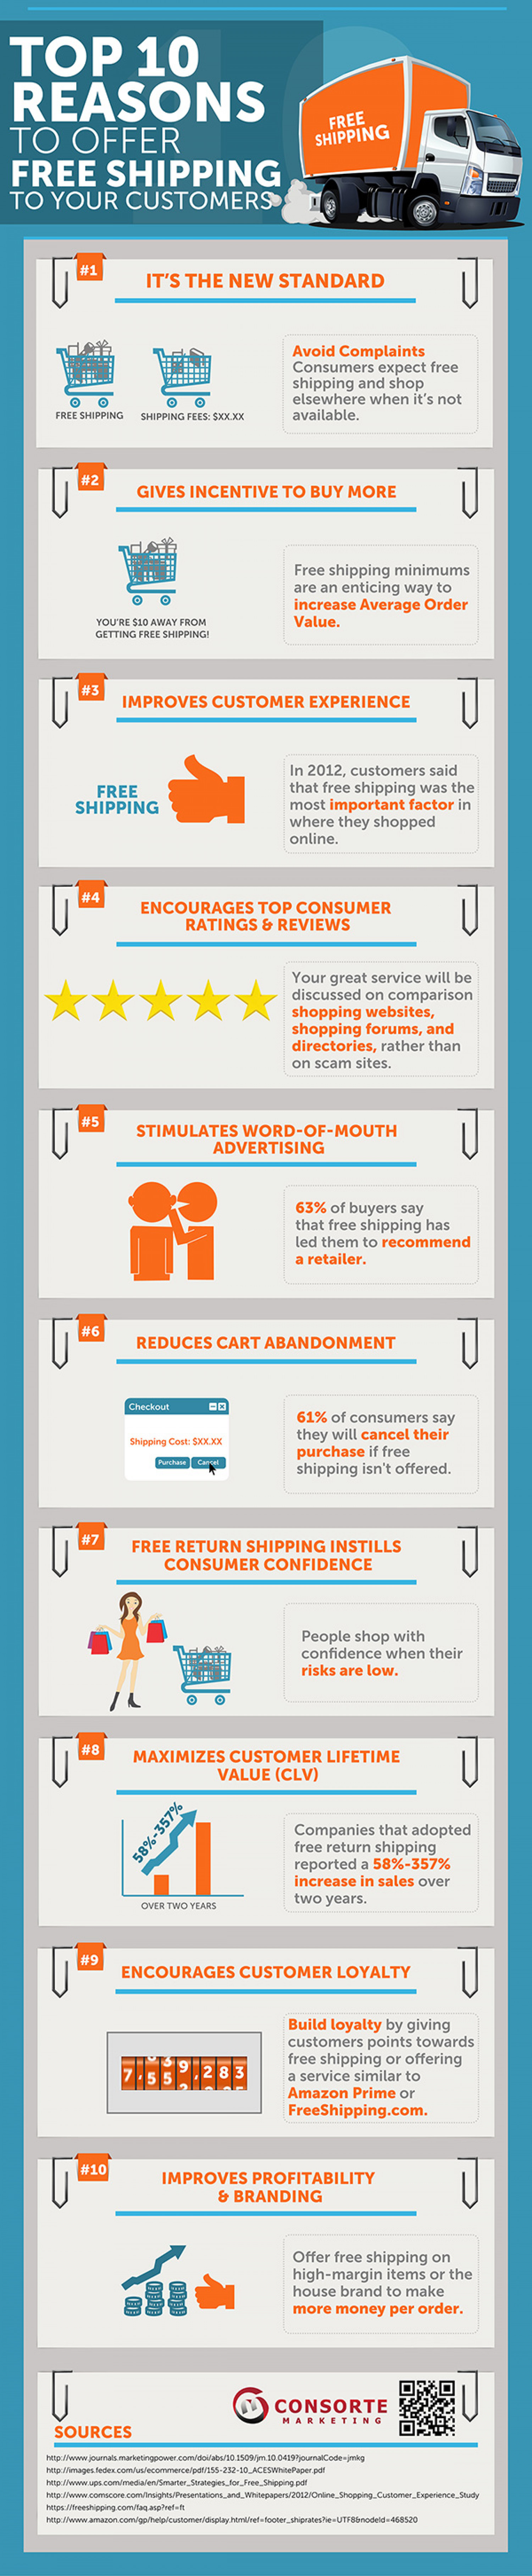 Top 10 Reasons To Offer Free Shipping to Customers Infographic